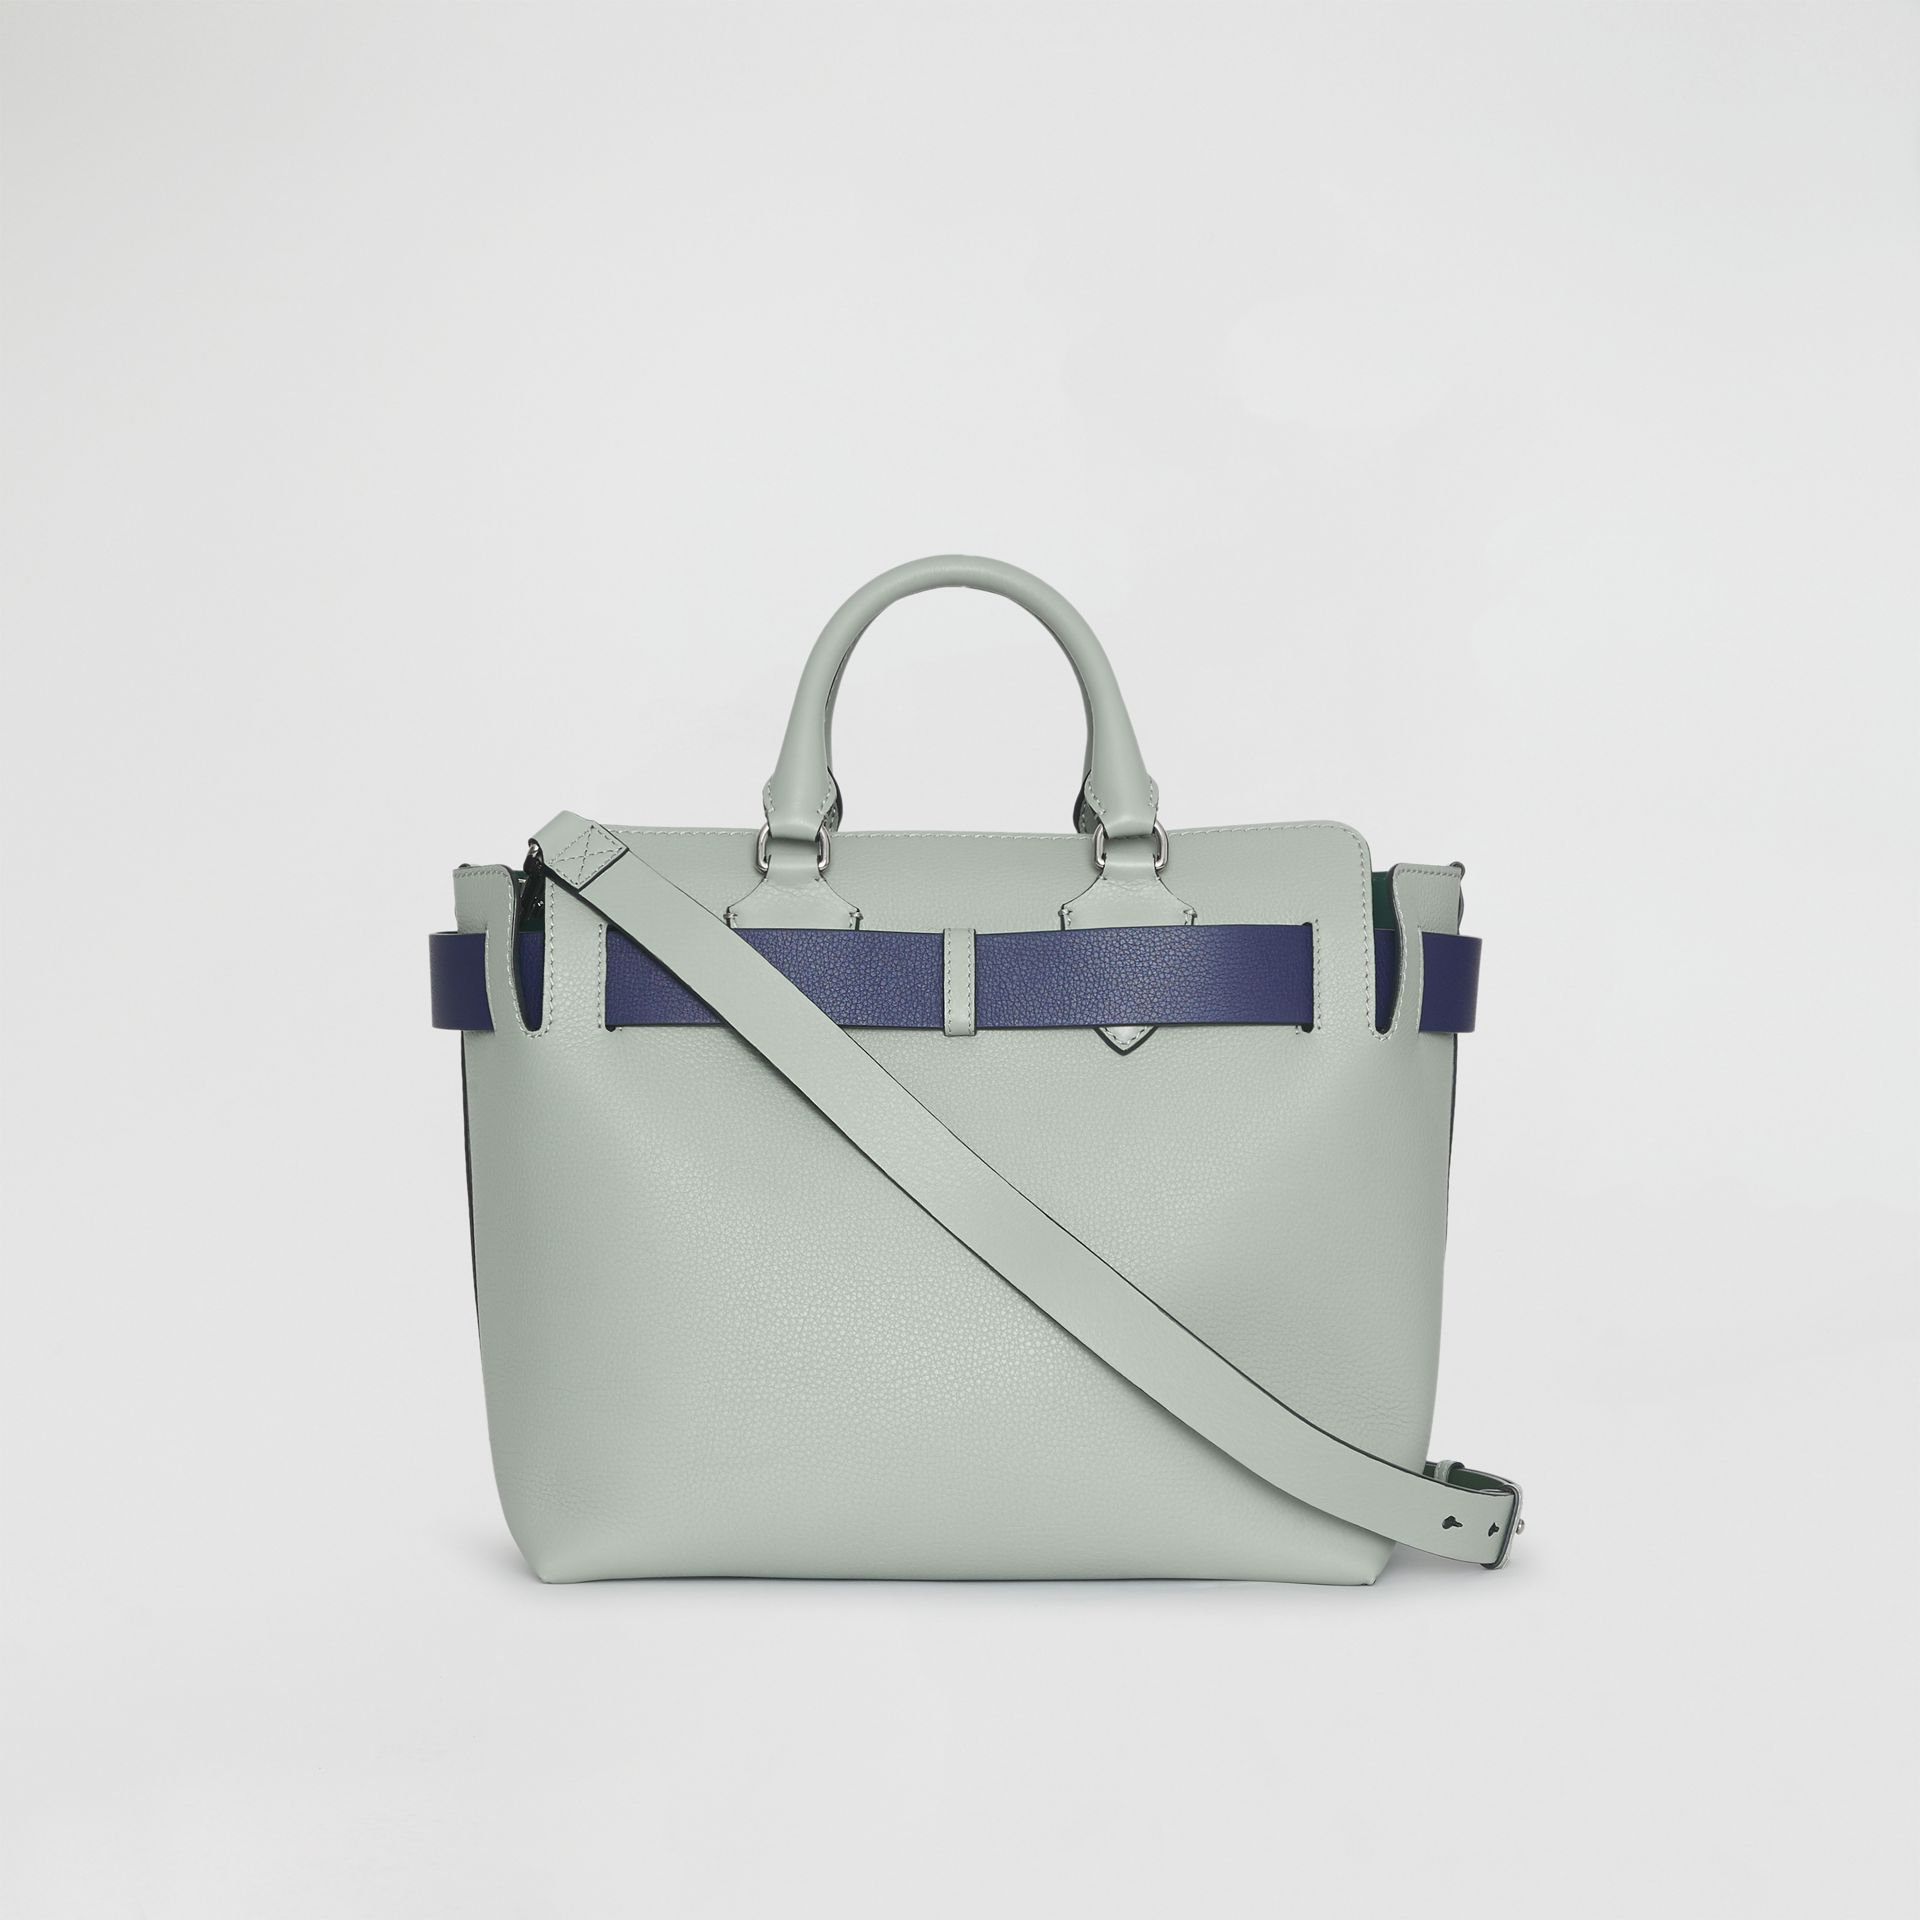 Sac The Belt moyen en cuir (Gris Bleu) - Femme | Burberry - photo de la galerie 7